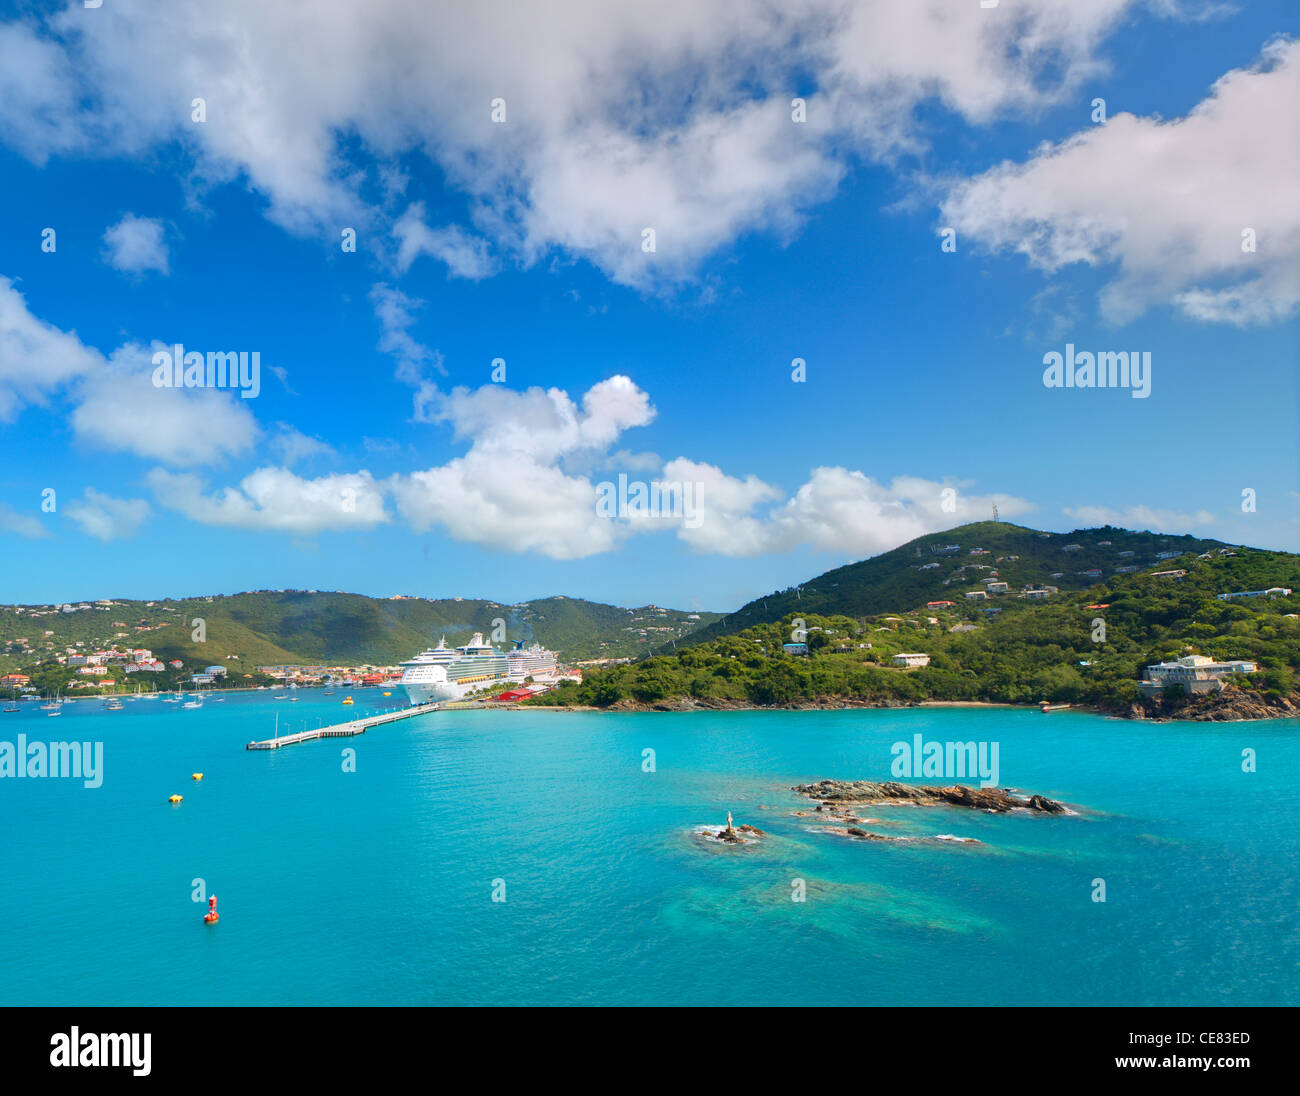 View of Charlotte Amalie, St. Thomas, U.S. Virgin Islands. Stock Photo